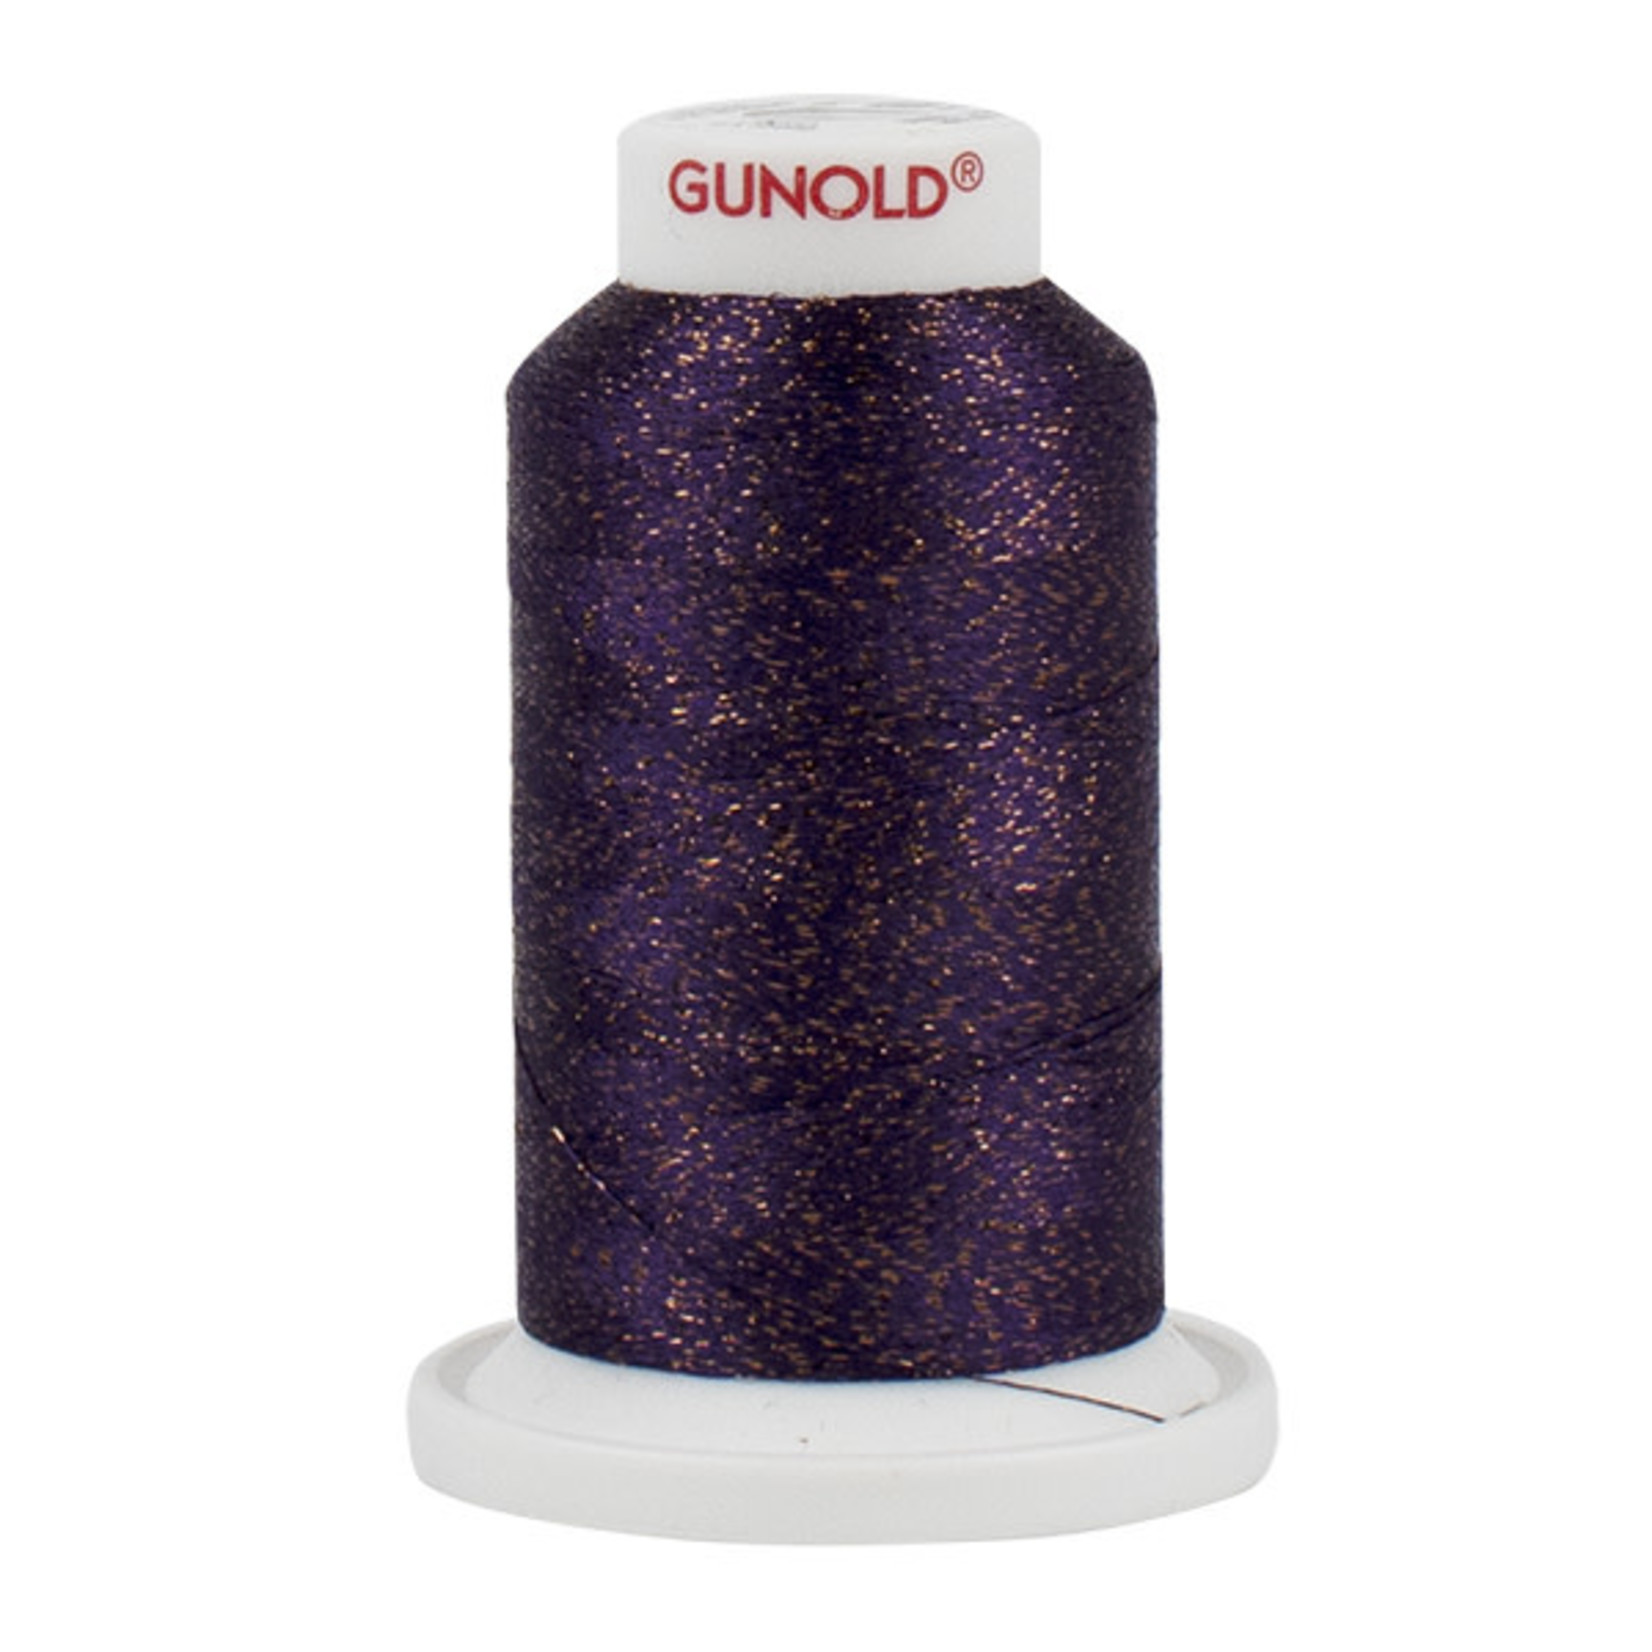 Gunold Poly Sparkle™ (Star™) Mini-King Cone 1,100 YD, 30 Wt, Aubergine with Copper Sparkle 50592